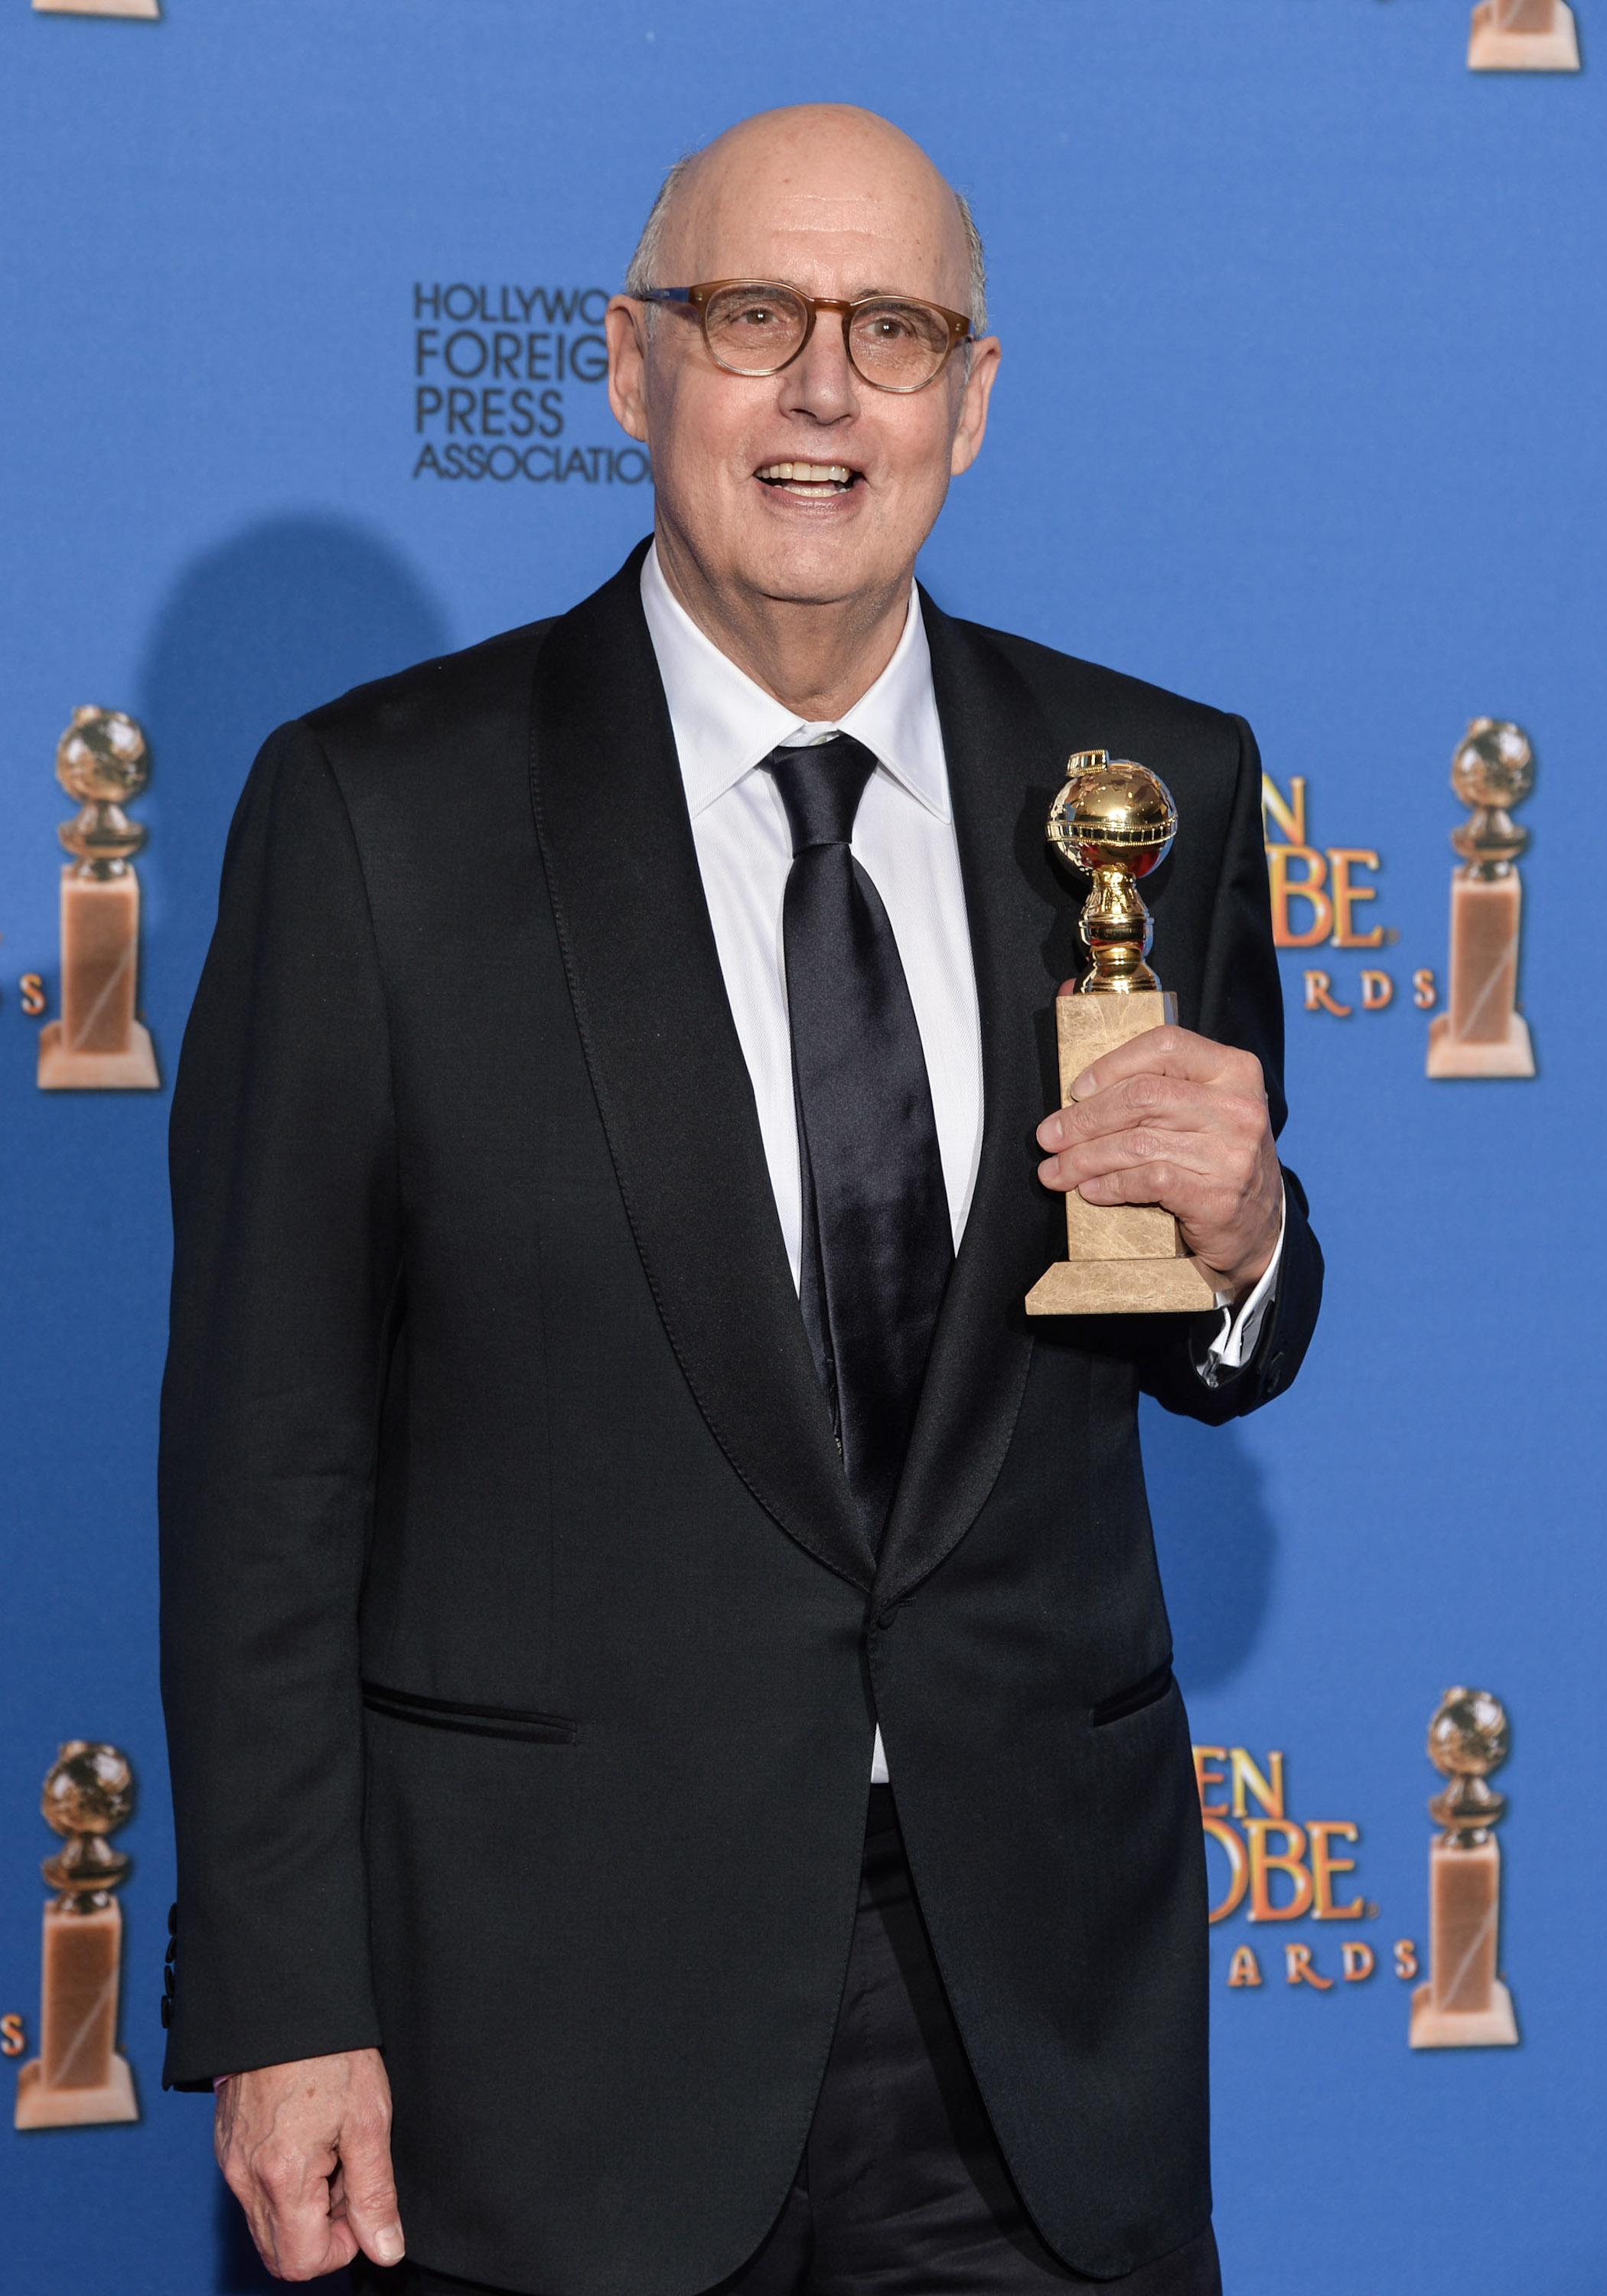 Actor Jeffrey Tambor poses in the press room during the 72nd Annual Golden Globe Awards at The Beverly Hilton Hotel on January 11, 2015 in Beverly Hills, California.